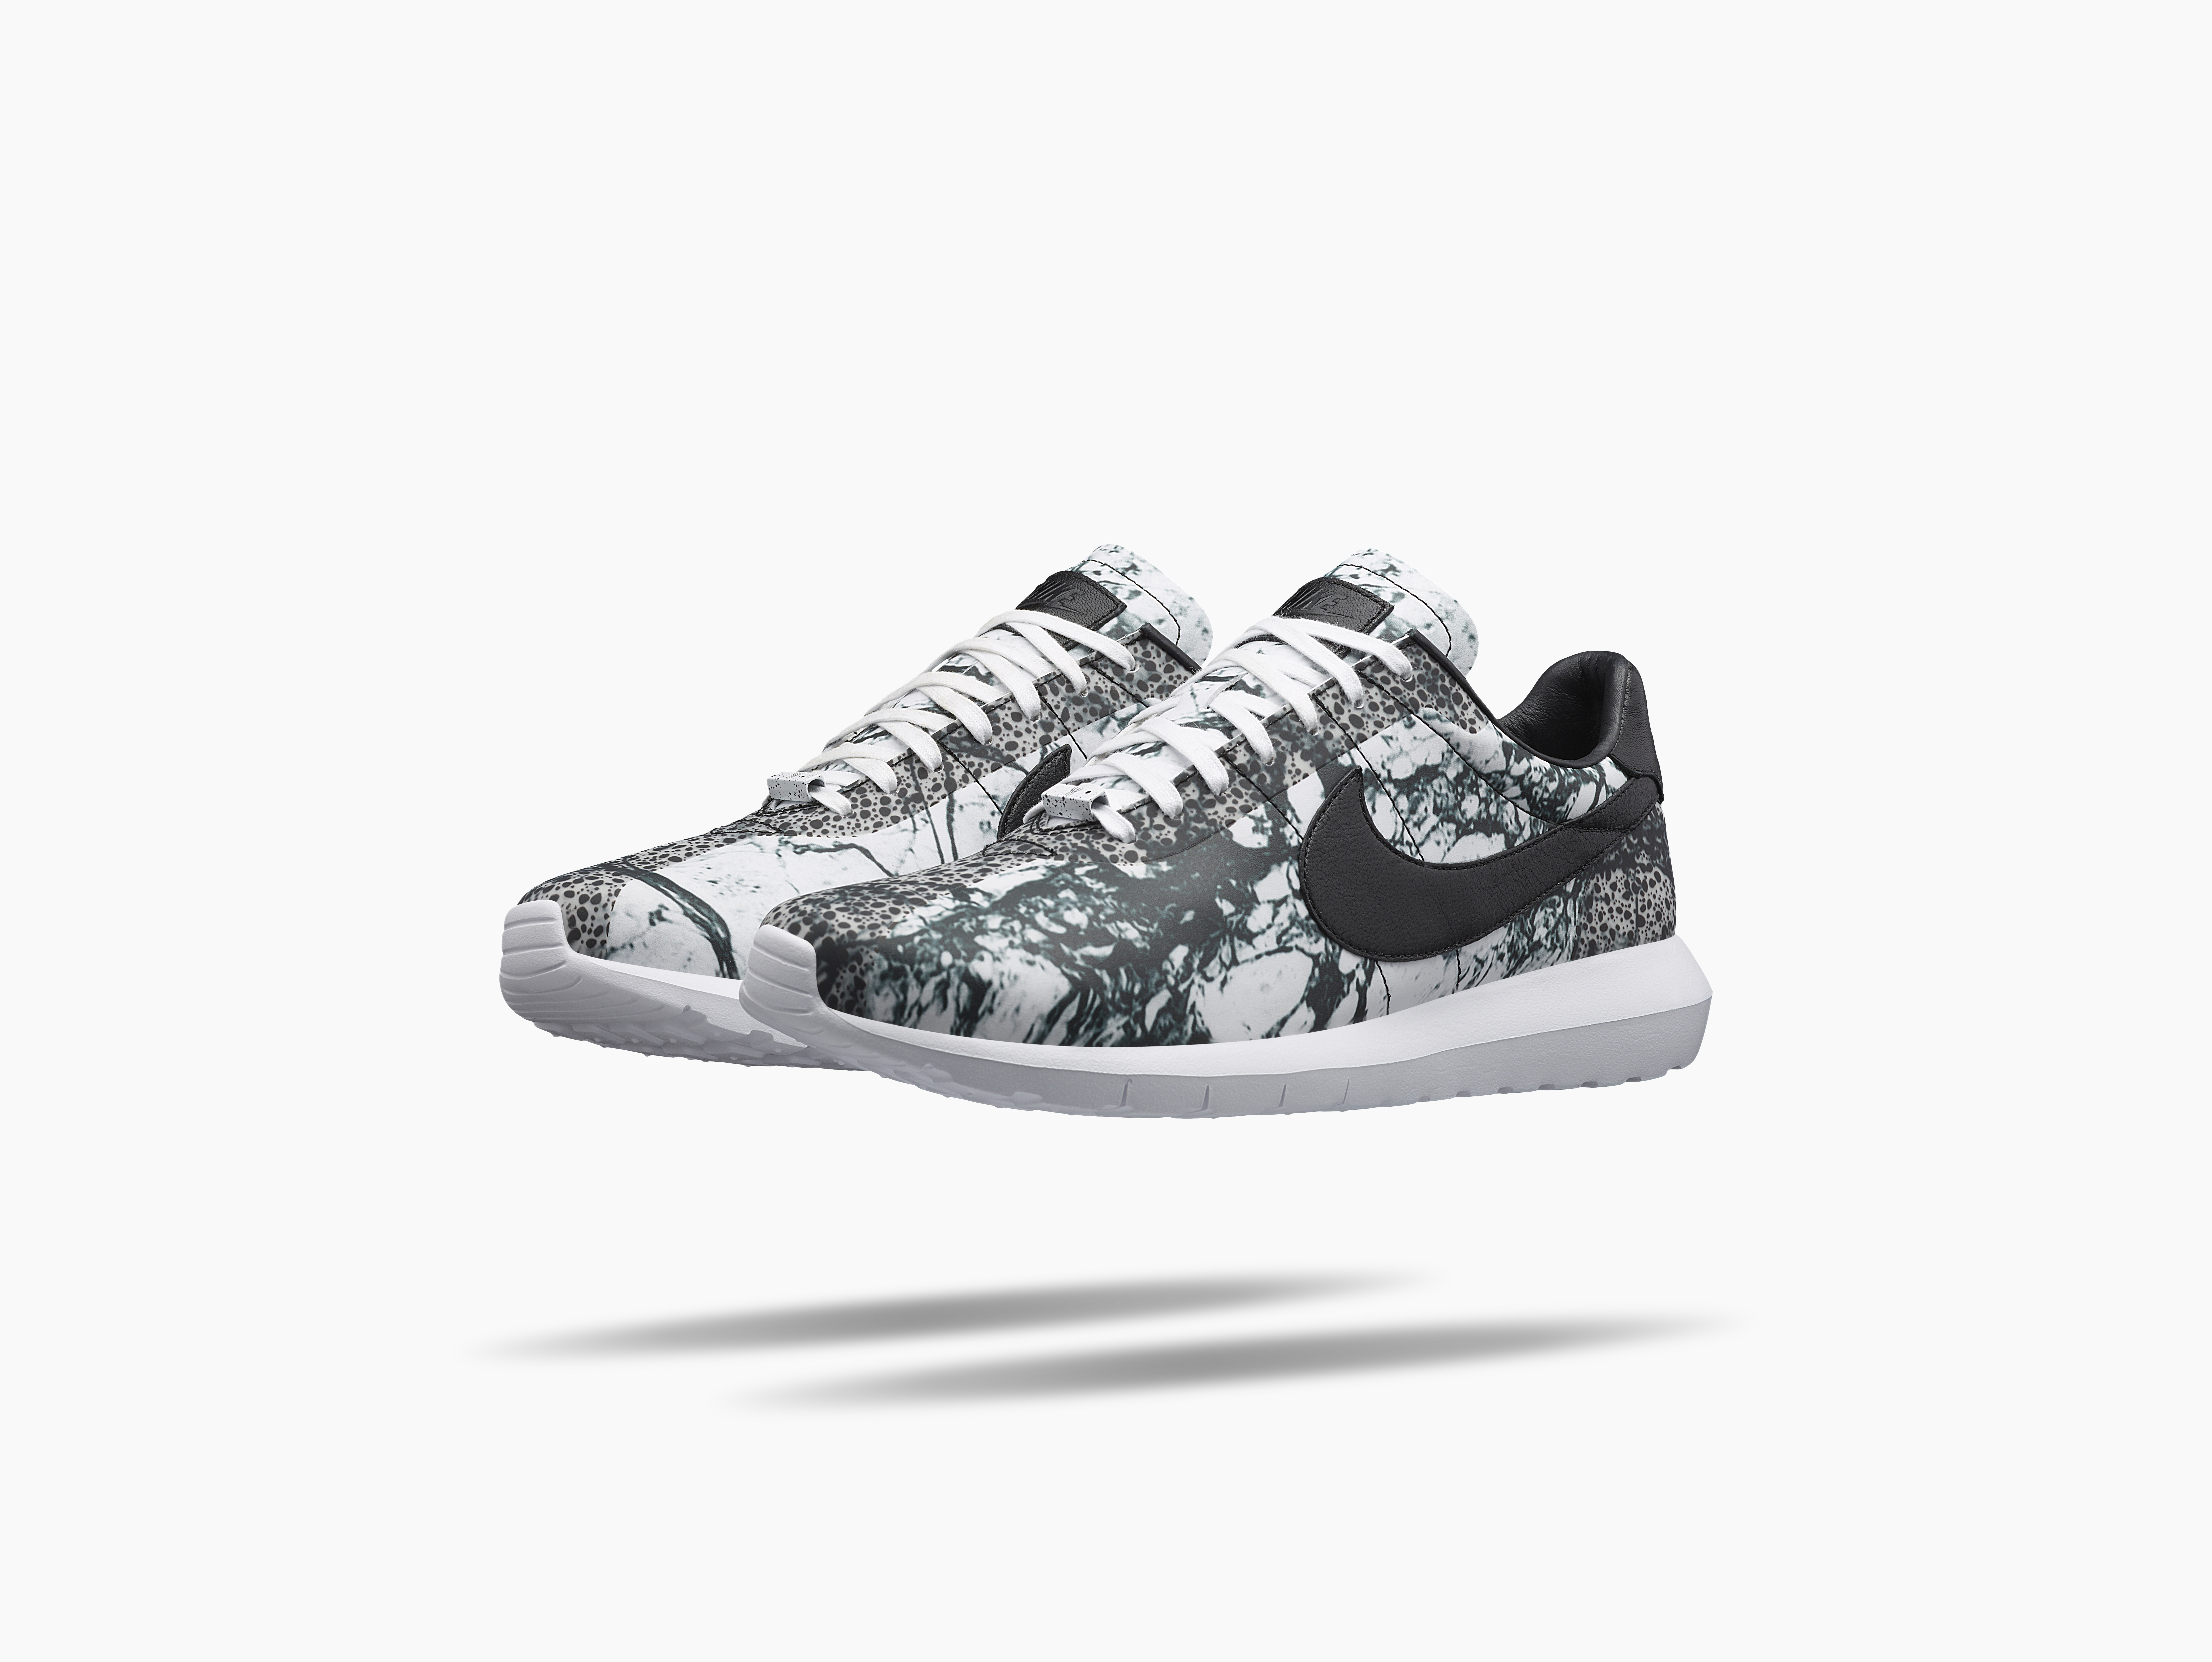 new product bbdf1 bf143 ... NikeCourt Air Max 1 Ultra 2 45205 NikeCourt Air Max 1 Ultra 4 45207  NikeCourt Air Max 1 Ultra 1 45246 NikeCourt Roshe LD-1000 3 45198 ...